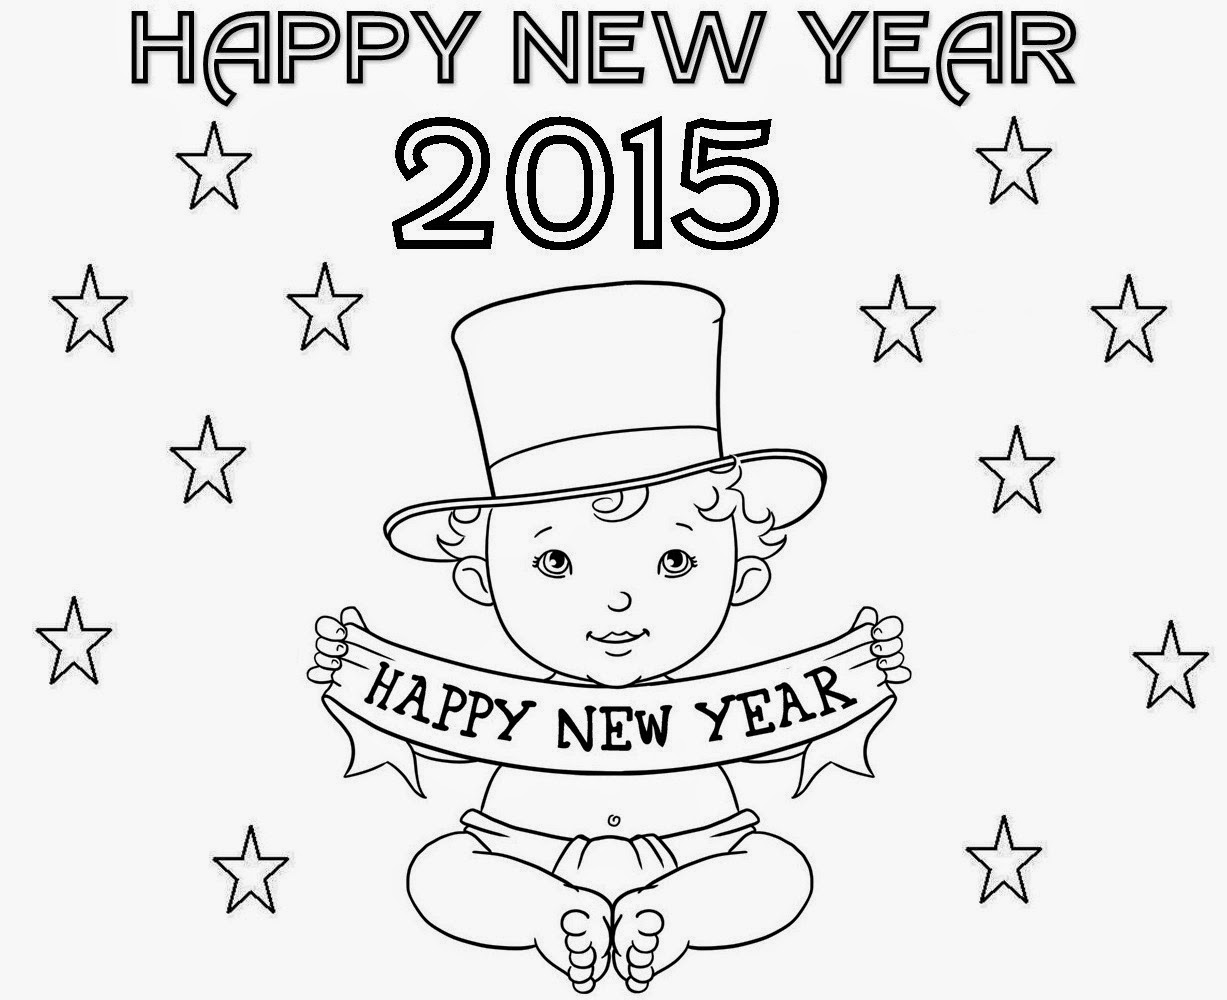 1227x1000 Colour Drawing Free Hd Wallpapers Happy New Year 2015 Coloring